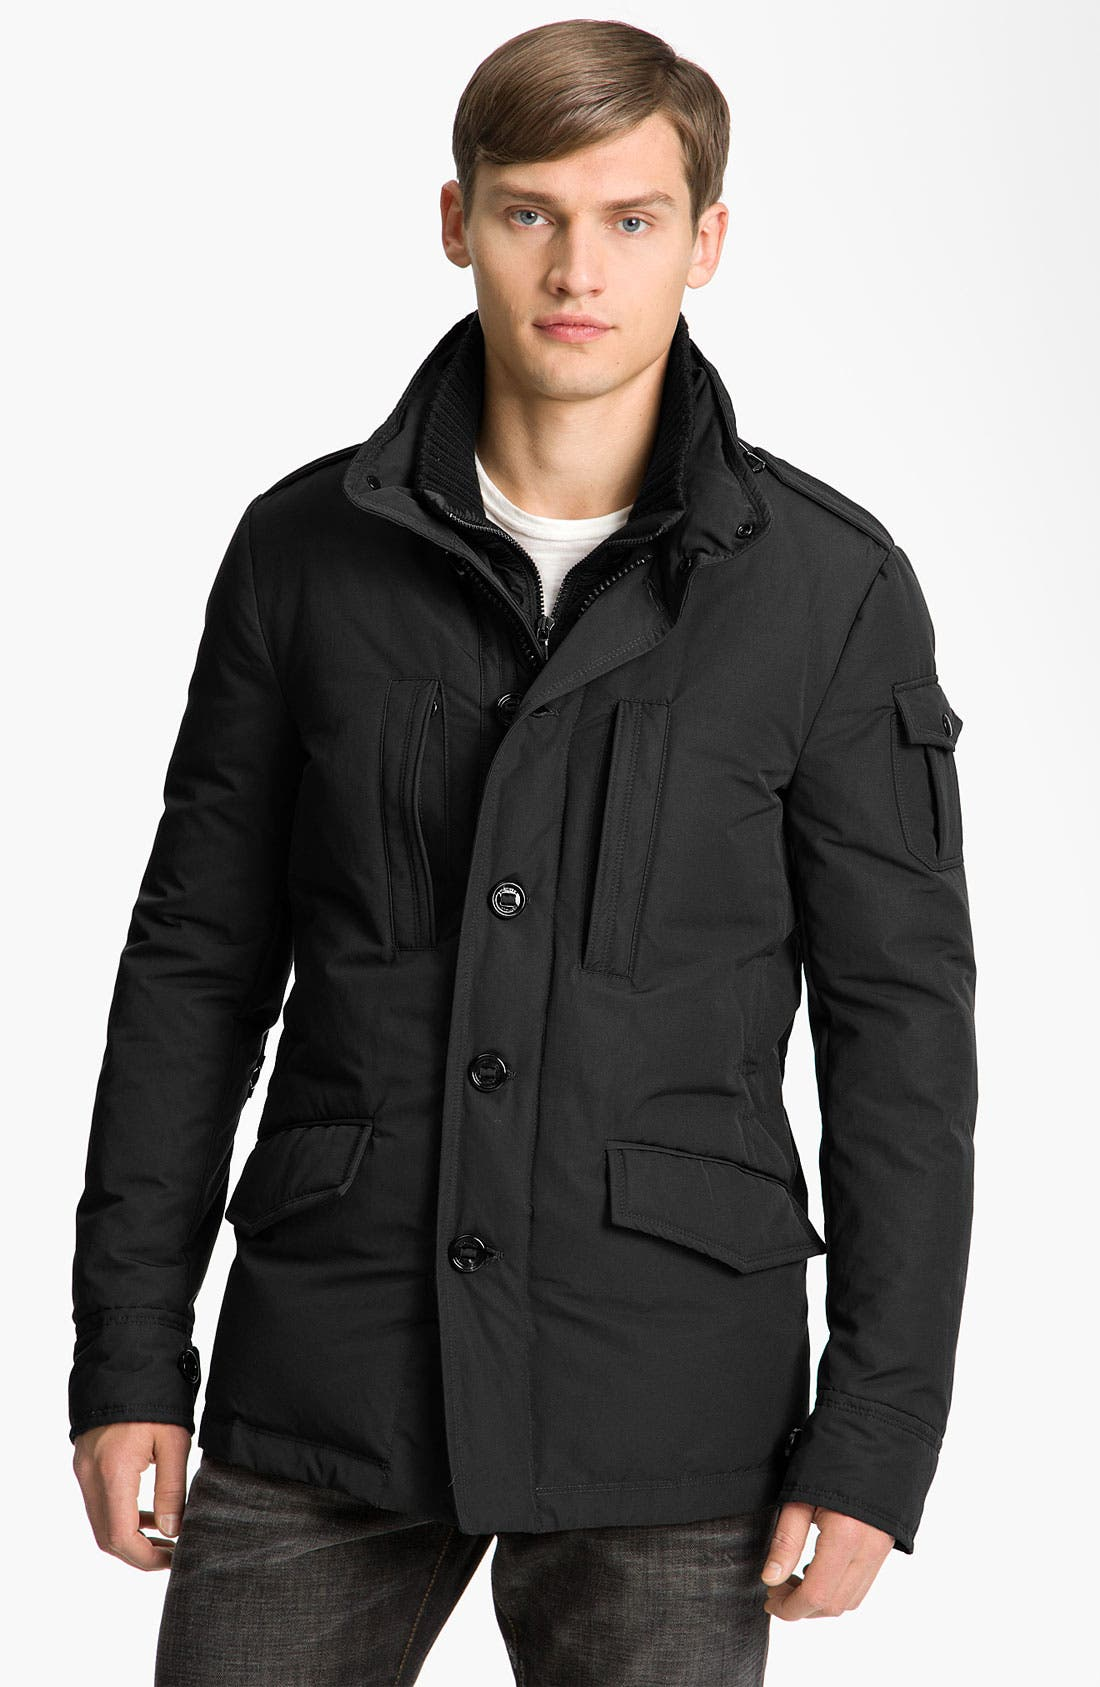 Alternate Image 1 Selected - Moncler 'Triomphe' Jacket